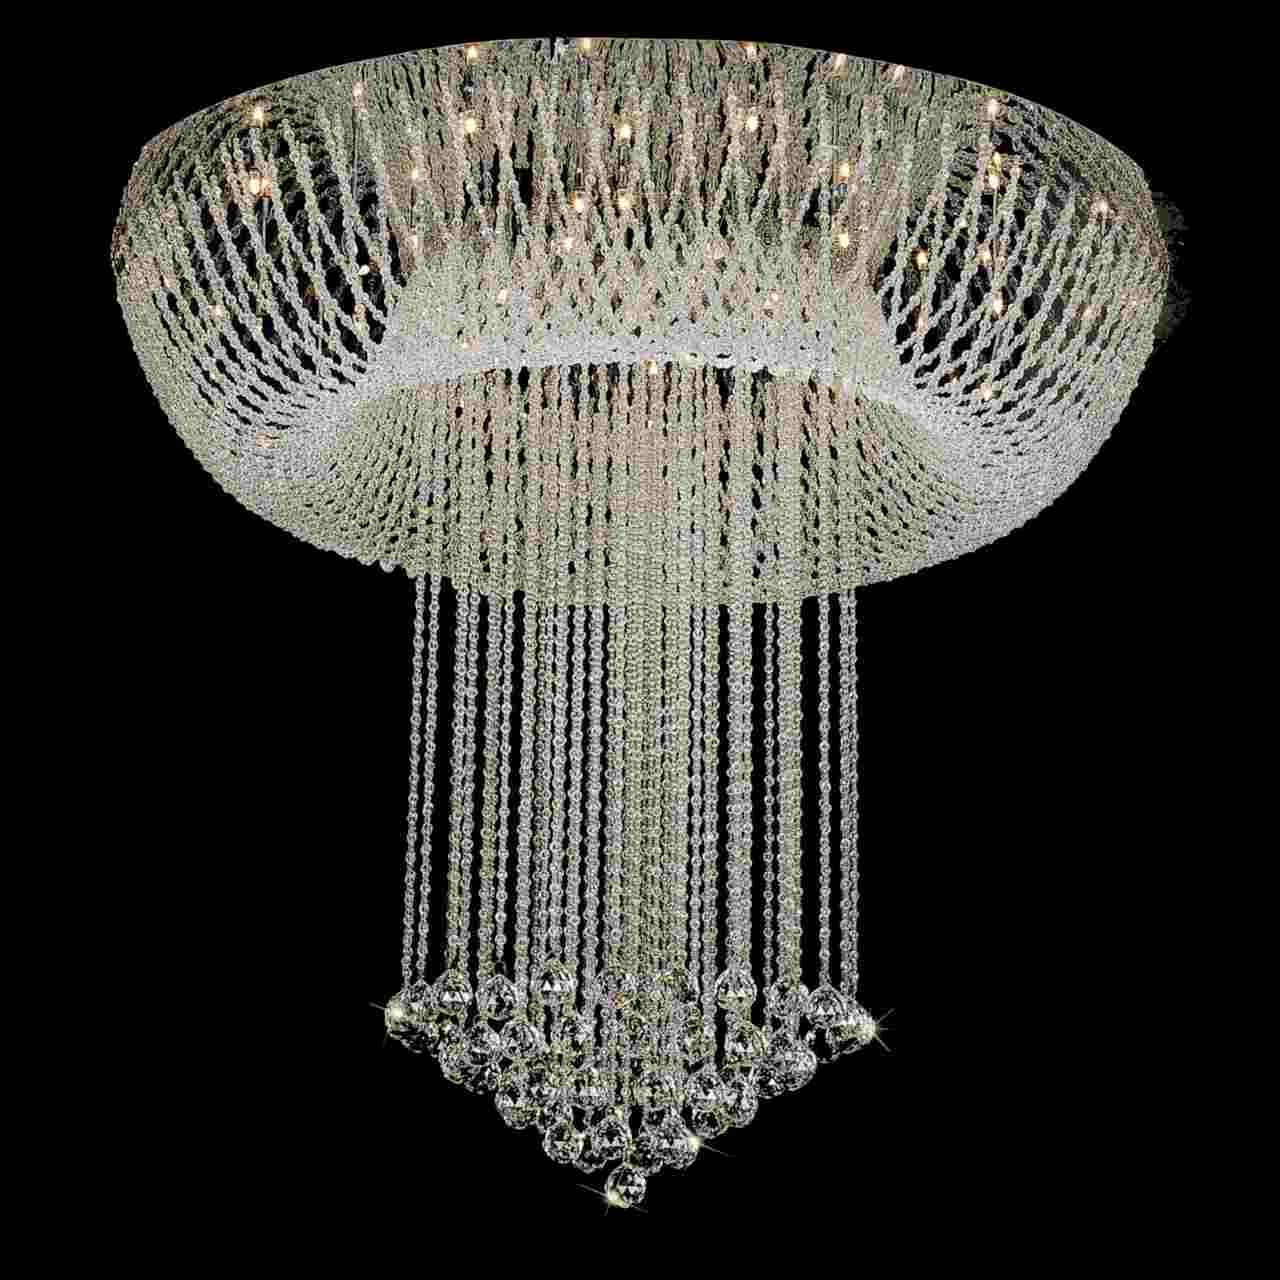 Modern foyer chandelier lighting width 32 height 32 lights 13 modern foyer chandelier lighting width 32 height 32 lights 13 arubaitofo Images